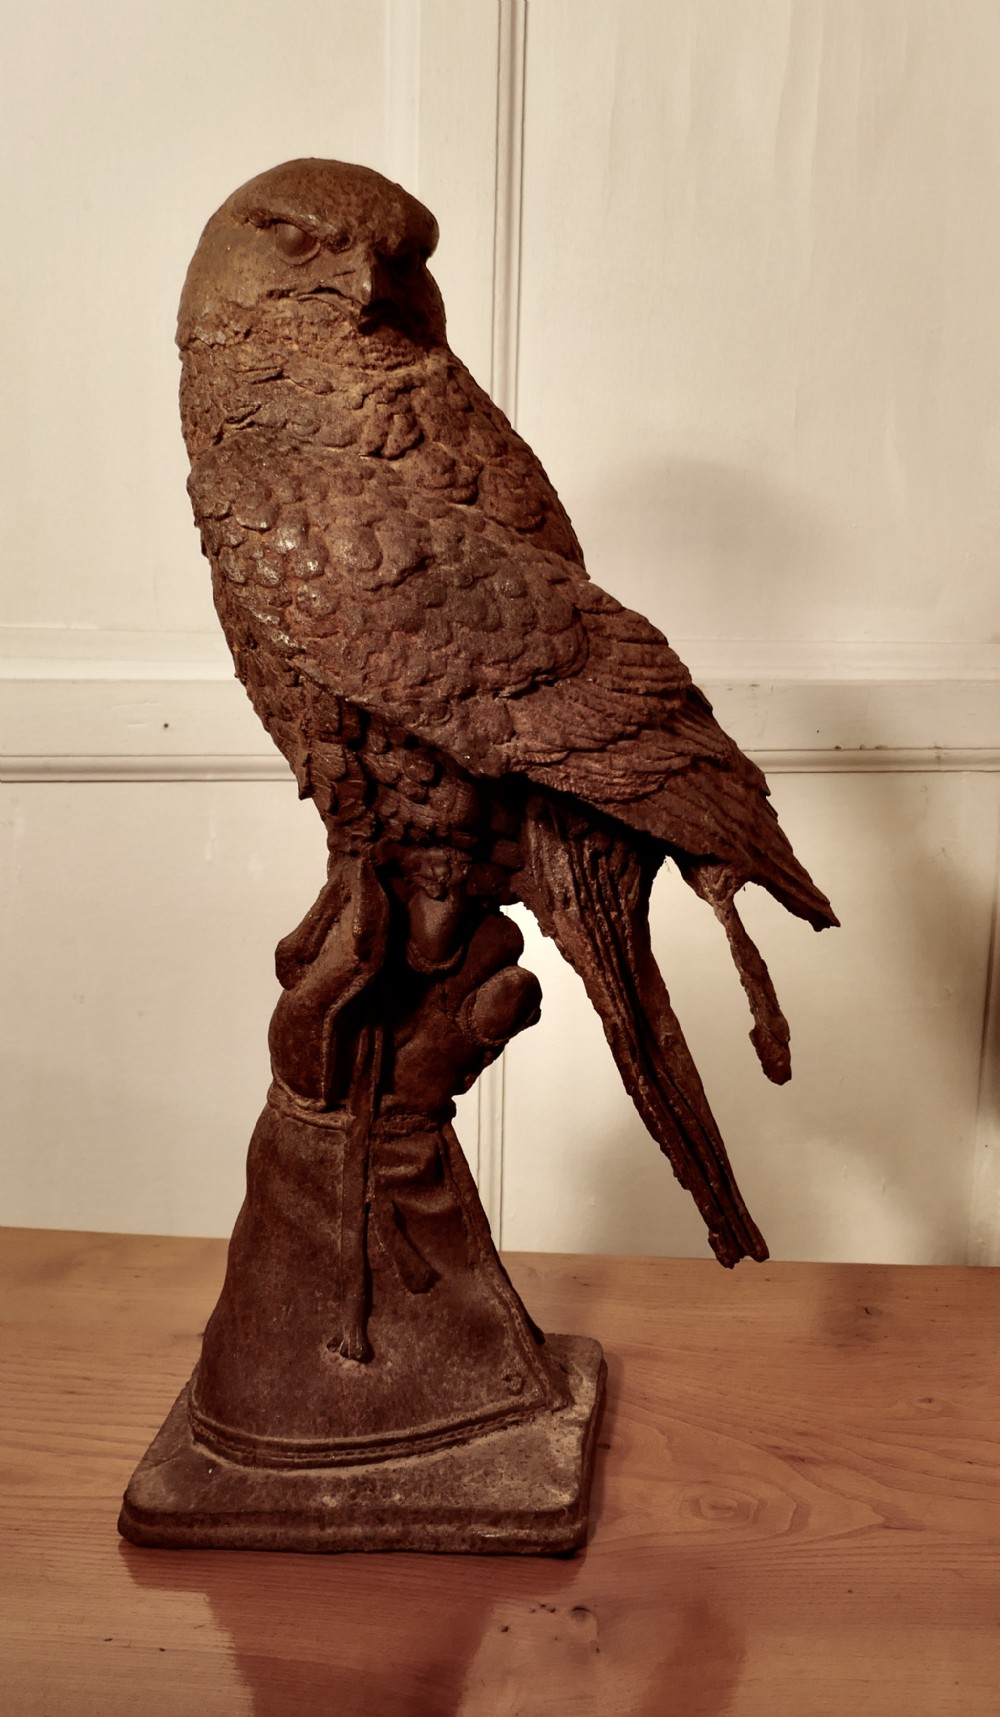 2ft tall cast iron statue of a falcon on a gloved hand